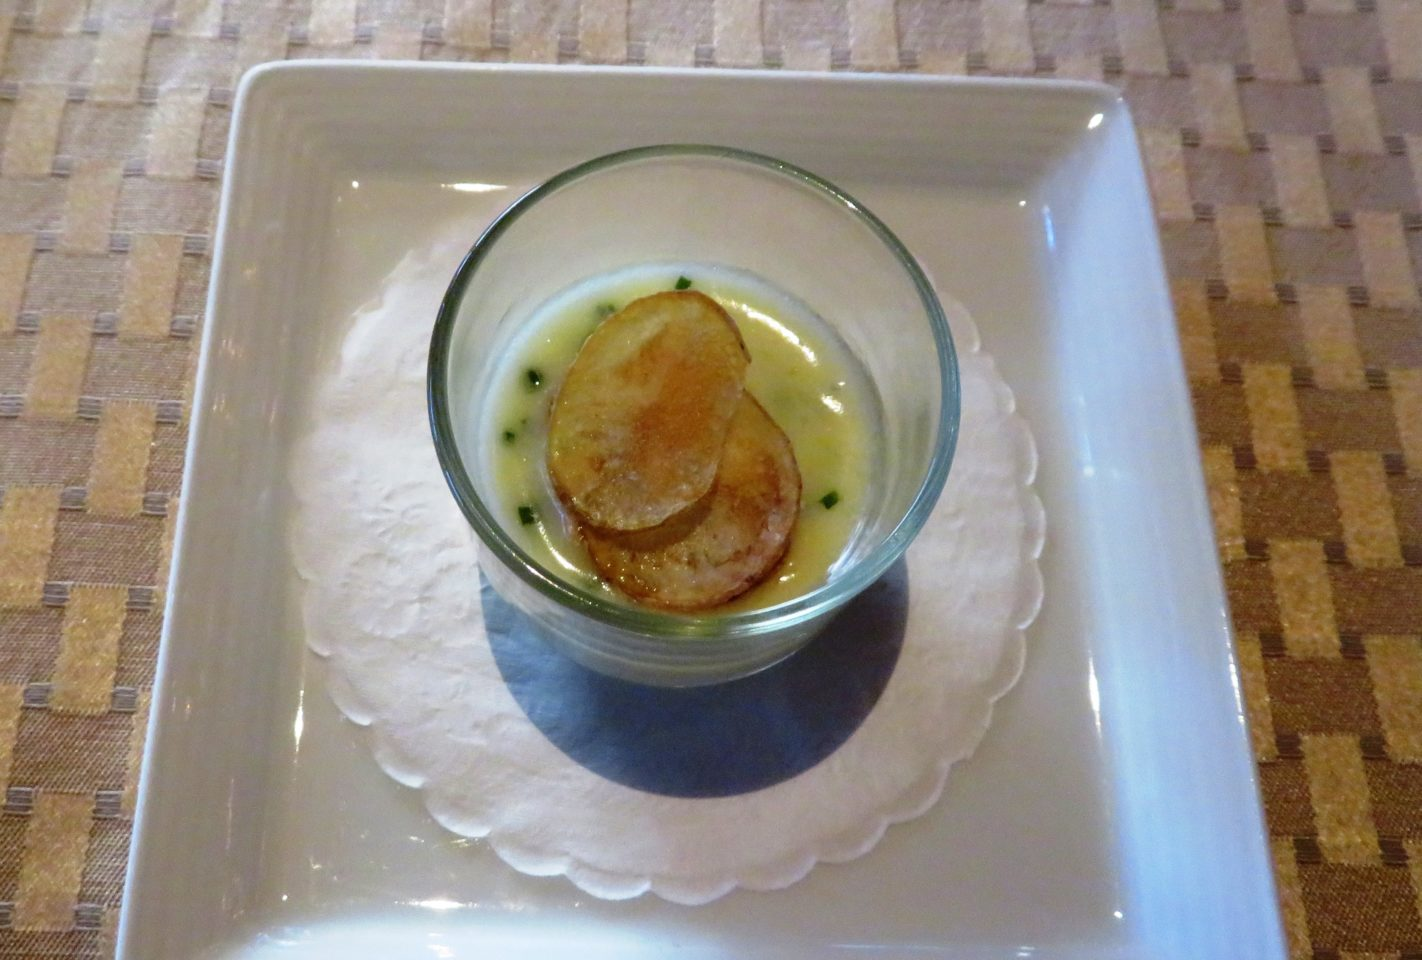 potato custard with chives to embolden the dish and home-made potato chips